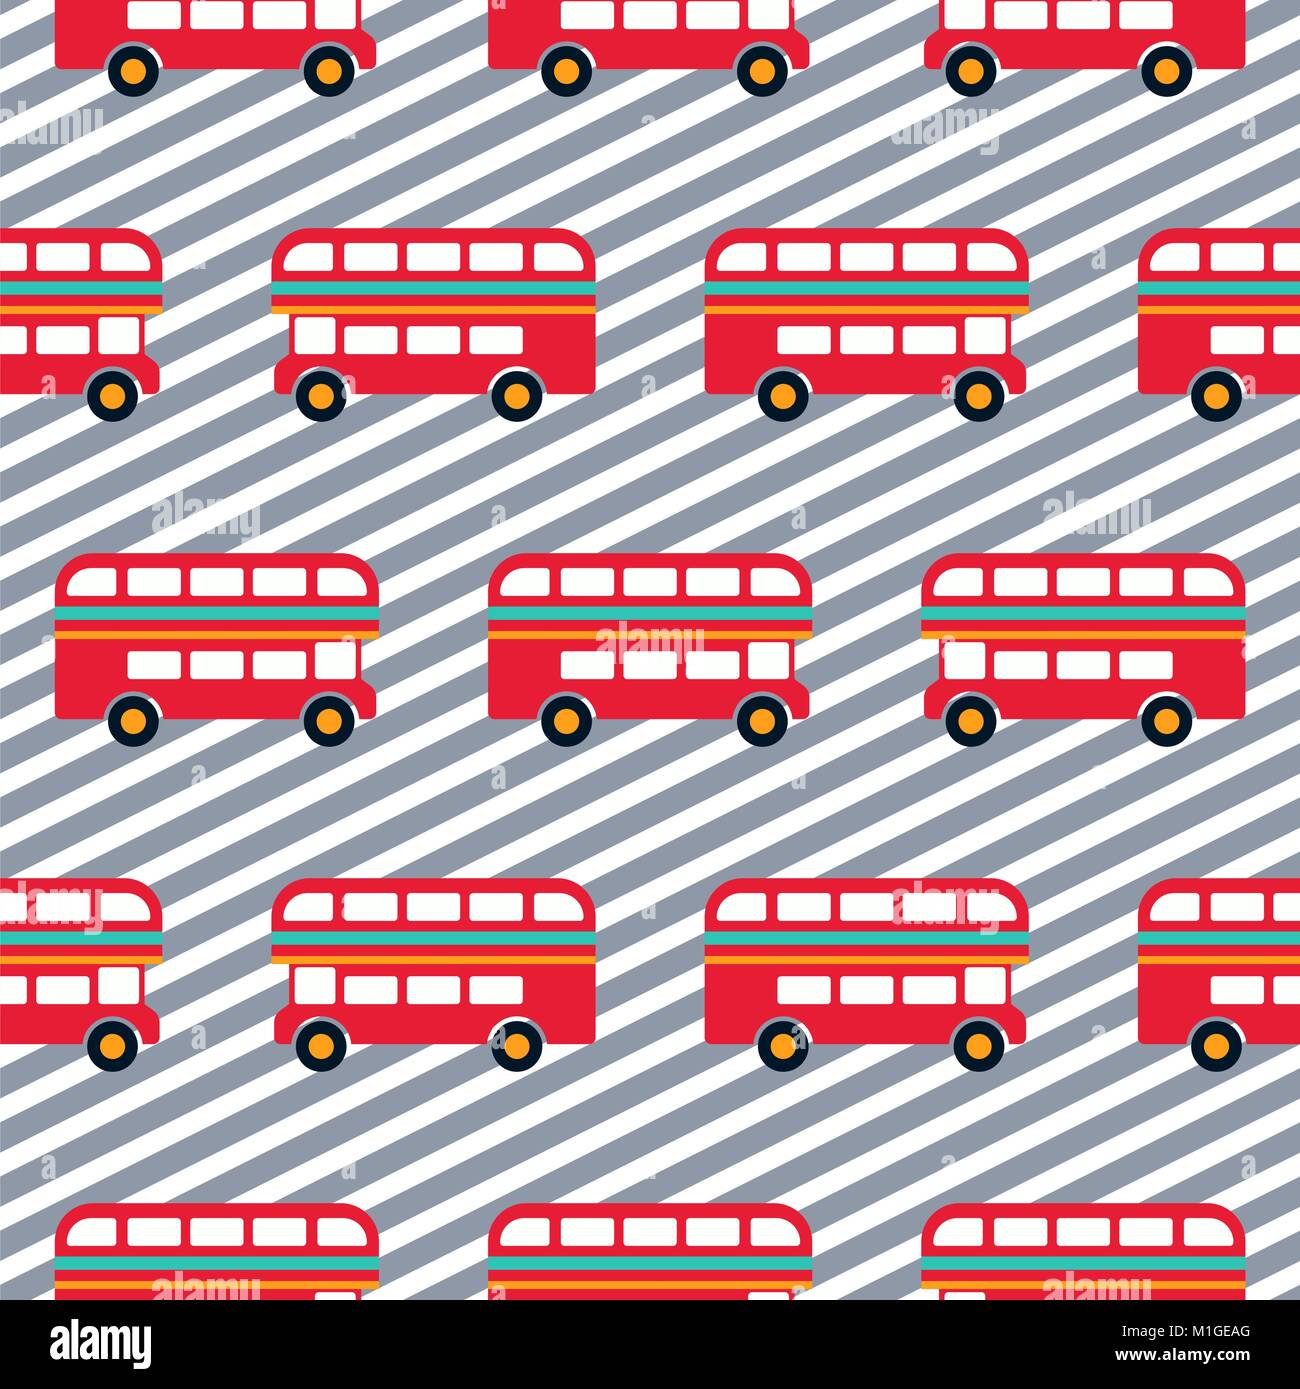 Red bus boy striped seamless vector pattern. - Stock Image